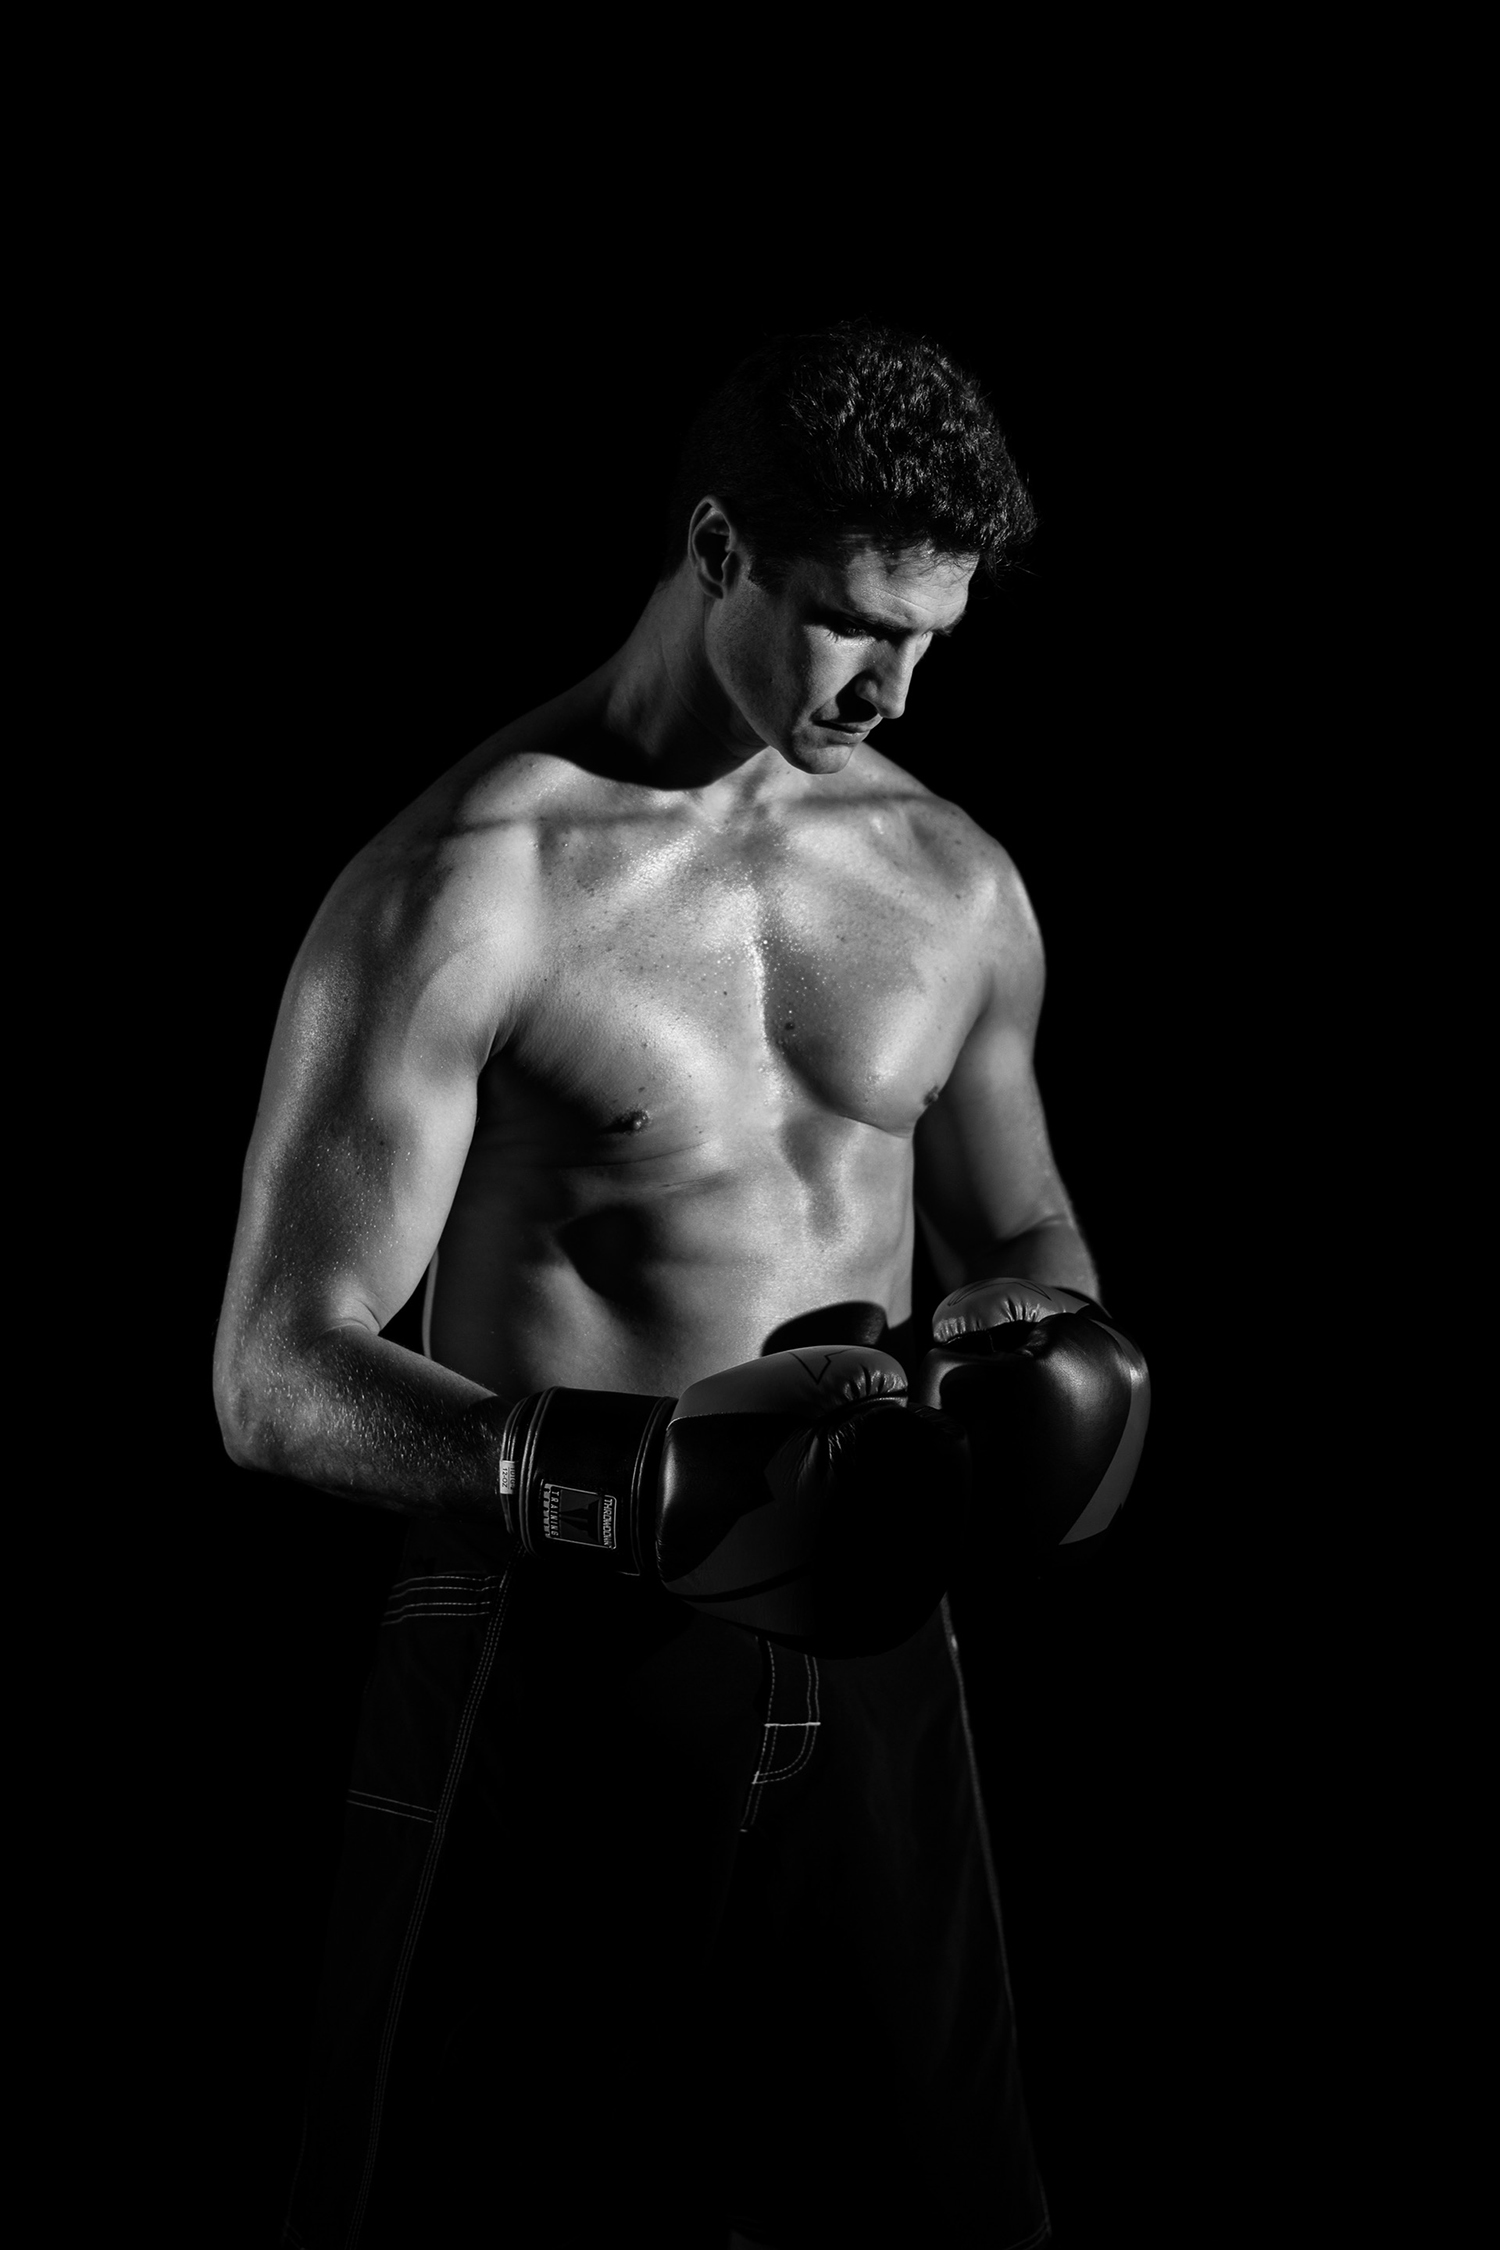 Young Boxer Fighter Wearing Boxing Gloves